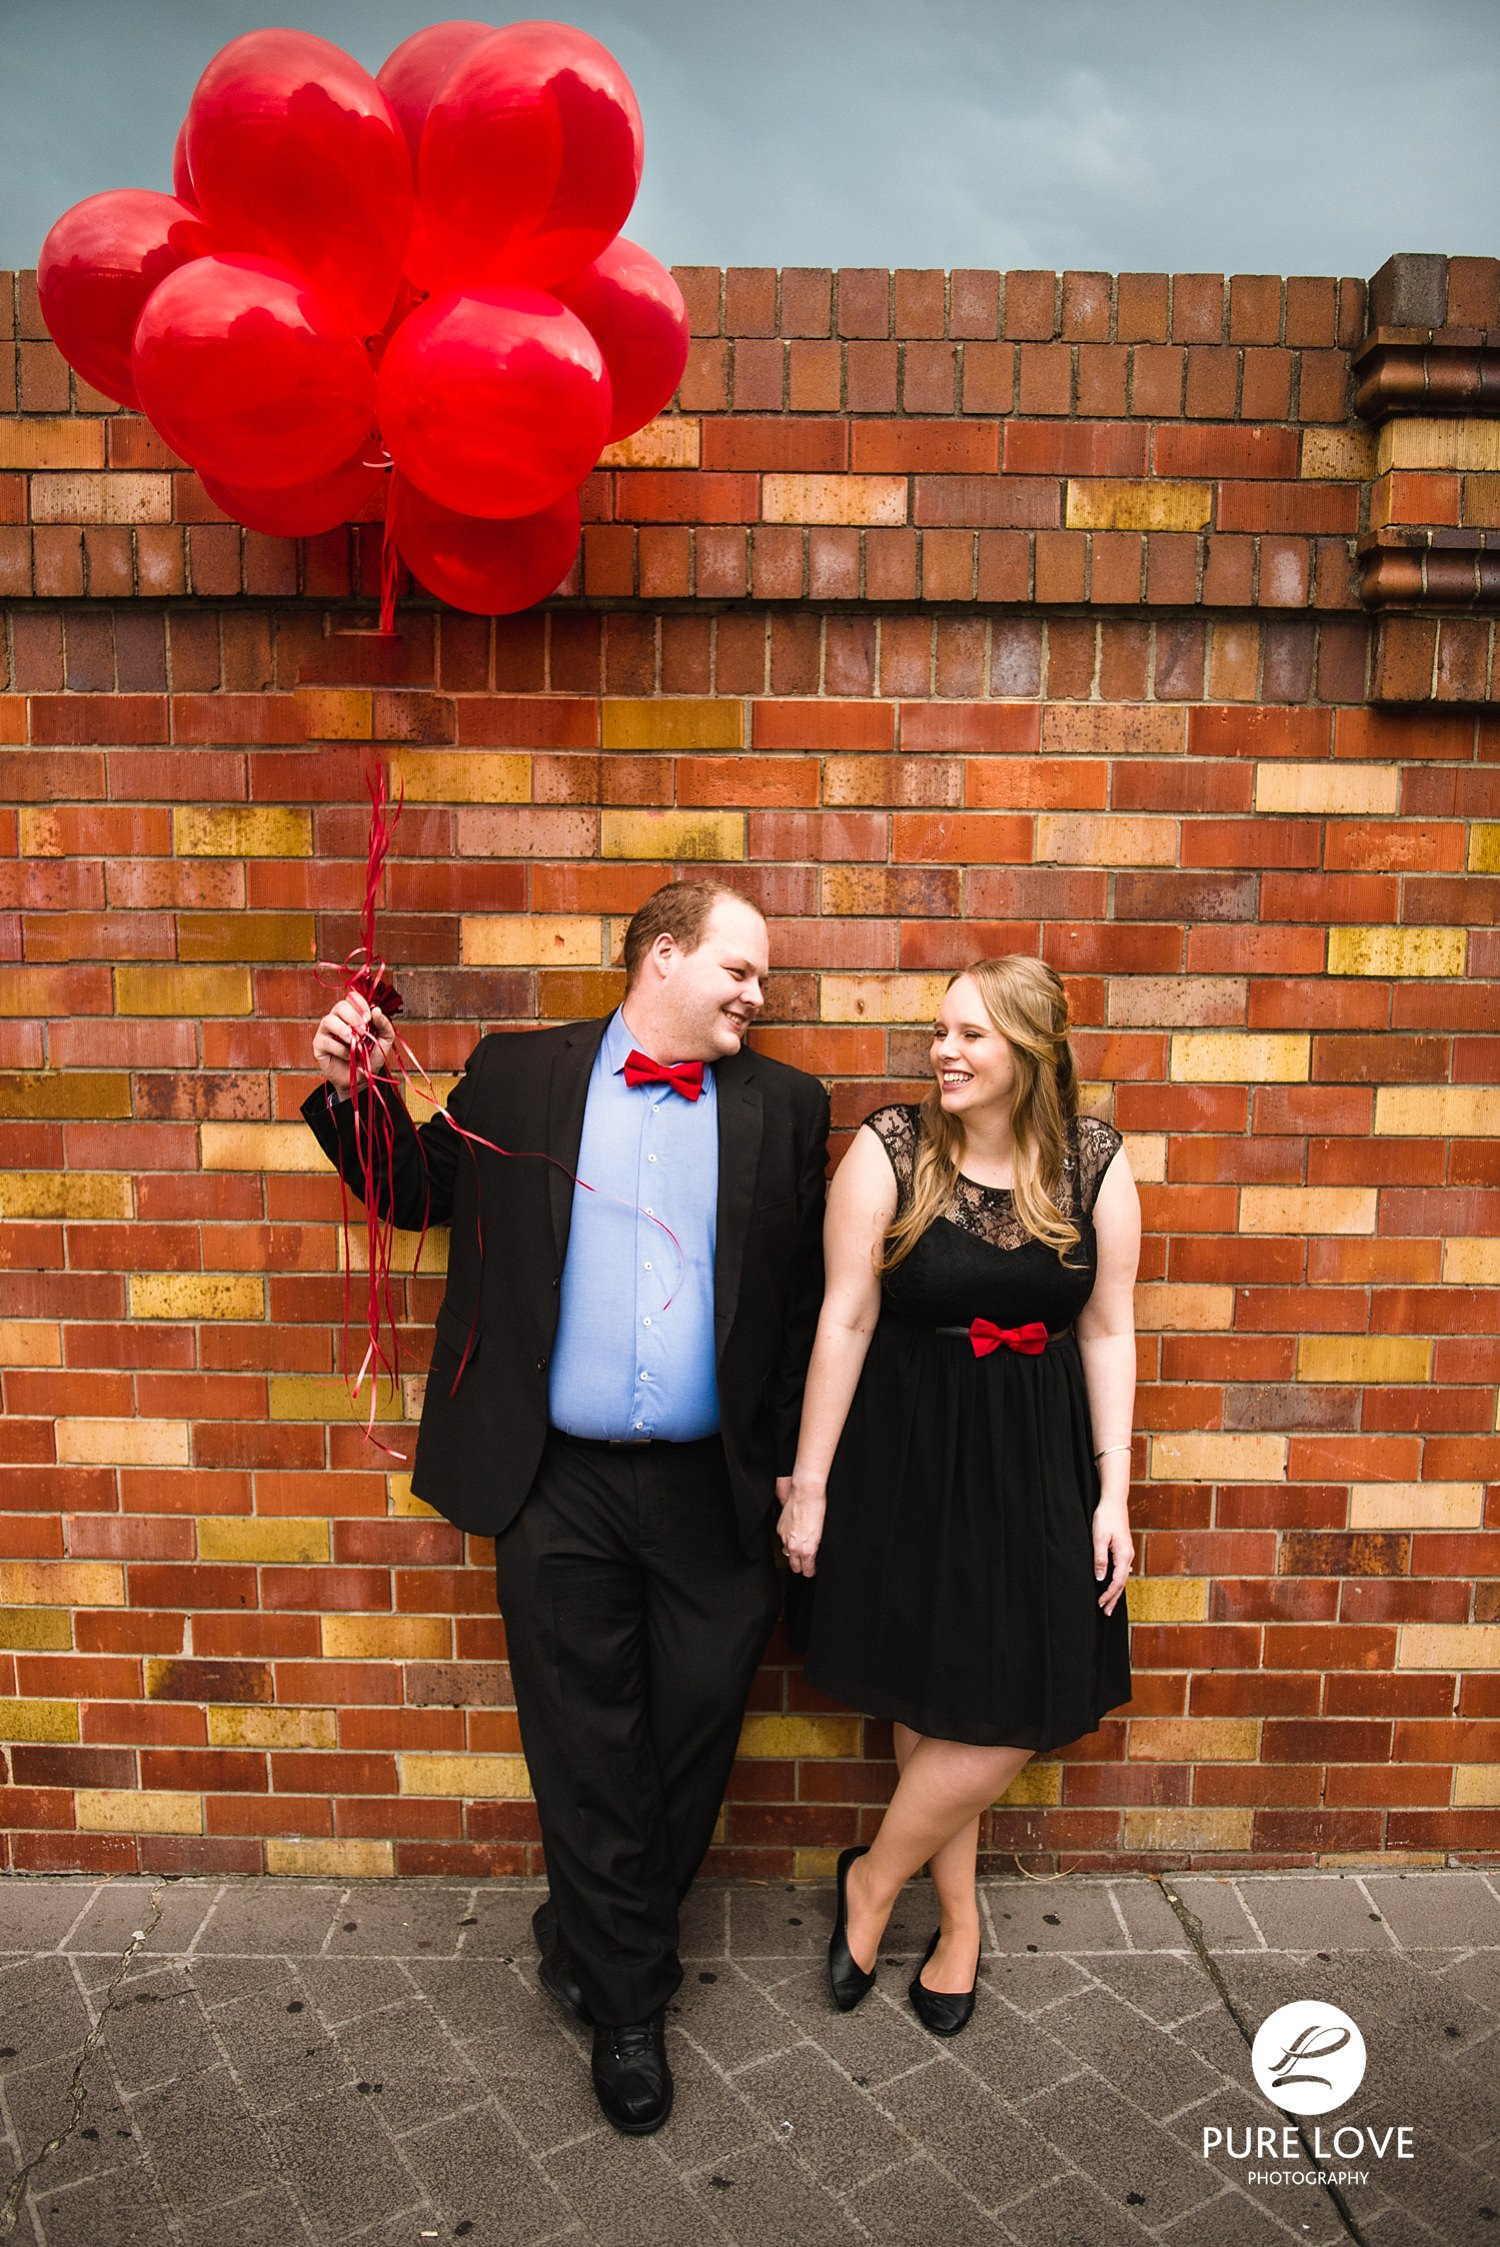 So much fun at Engagement Session. With red balloons at brick wall